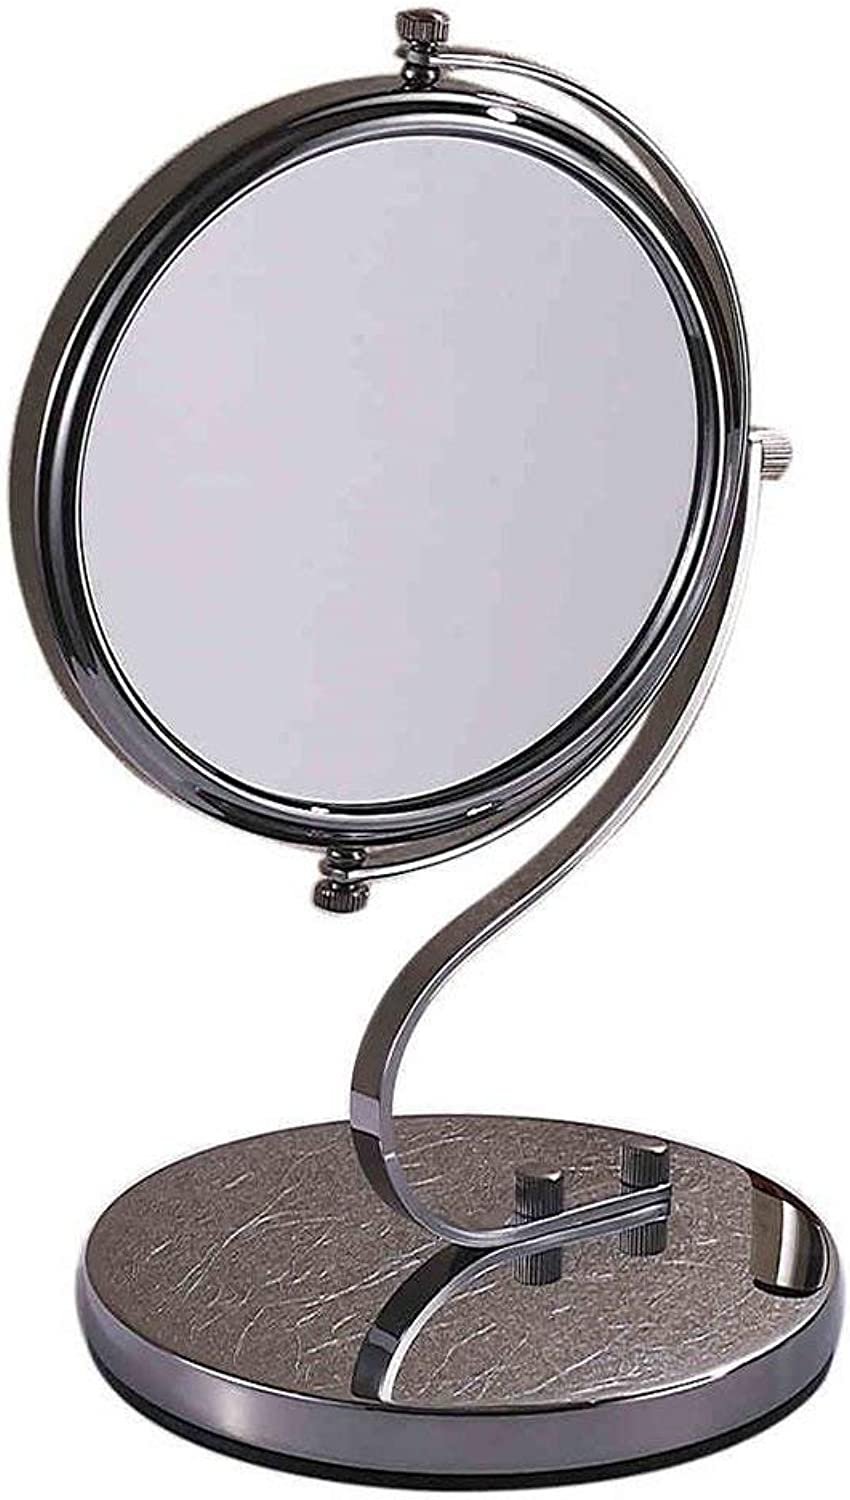 Mini Portable Dual Mirror Mirror Mirror of Beauty face Mirror Zoom Telescopic Mirror Appropriate Folding for The Room and The Bathroom